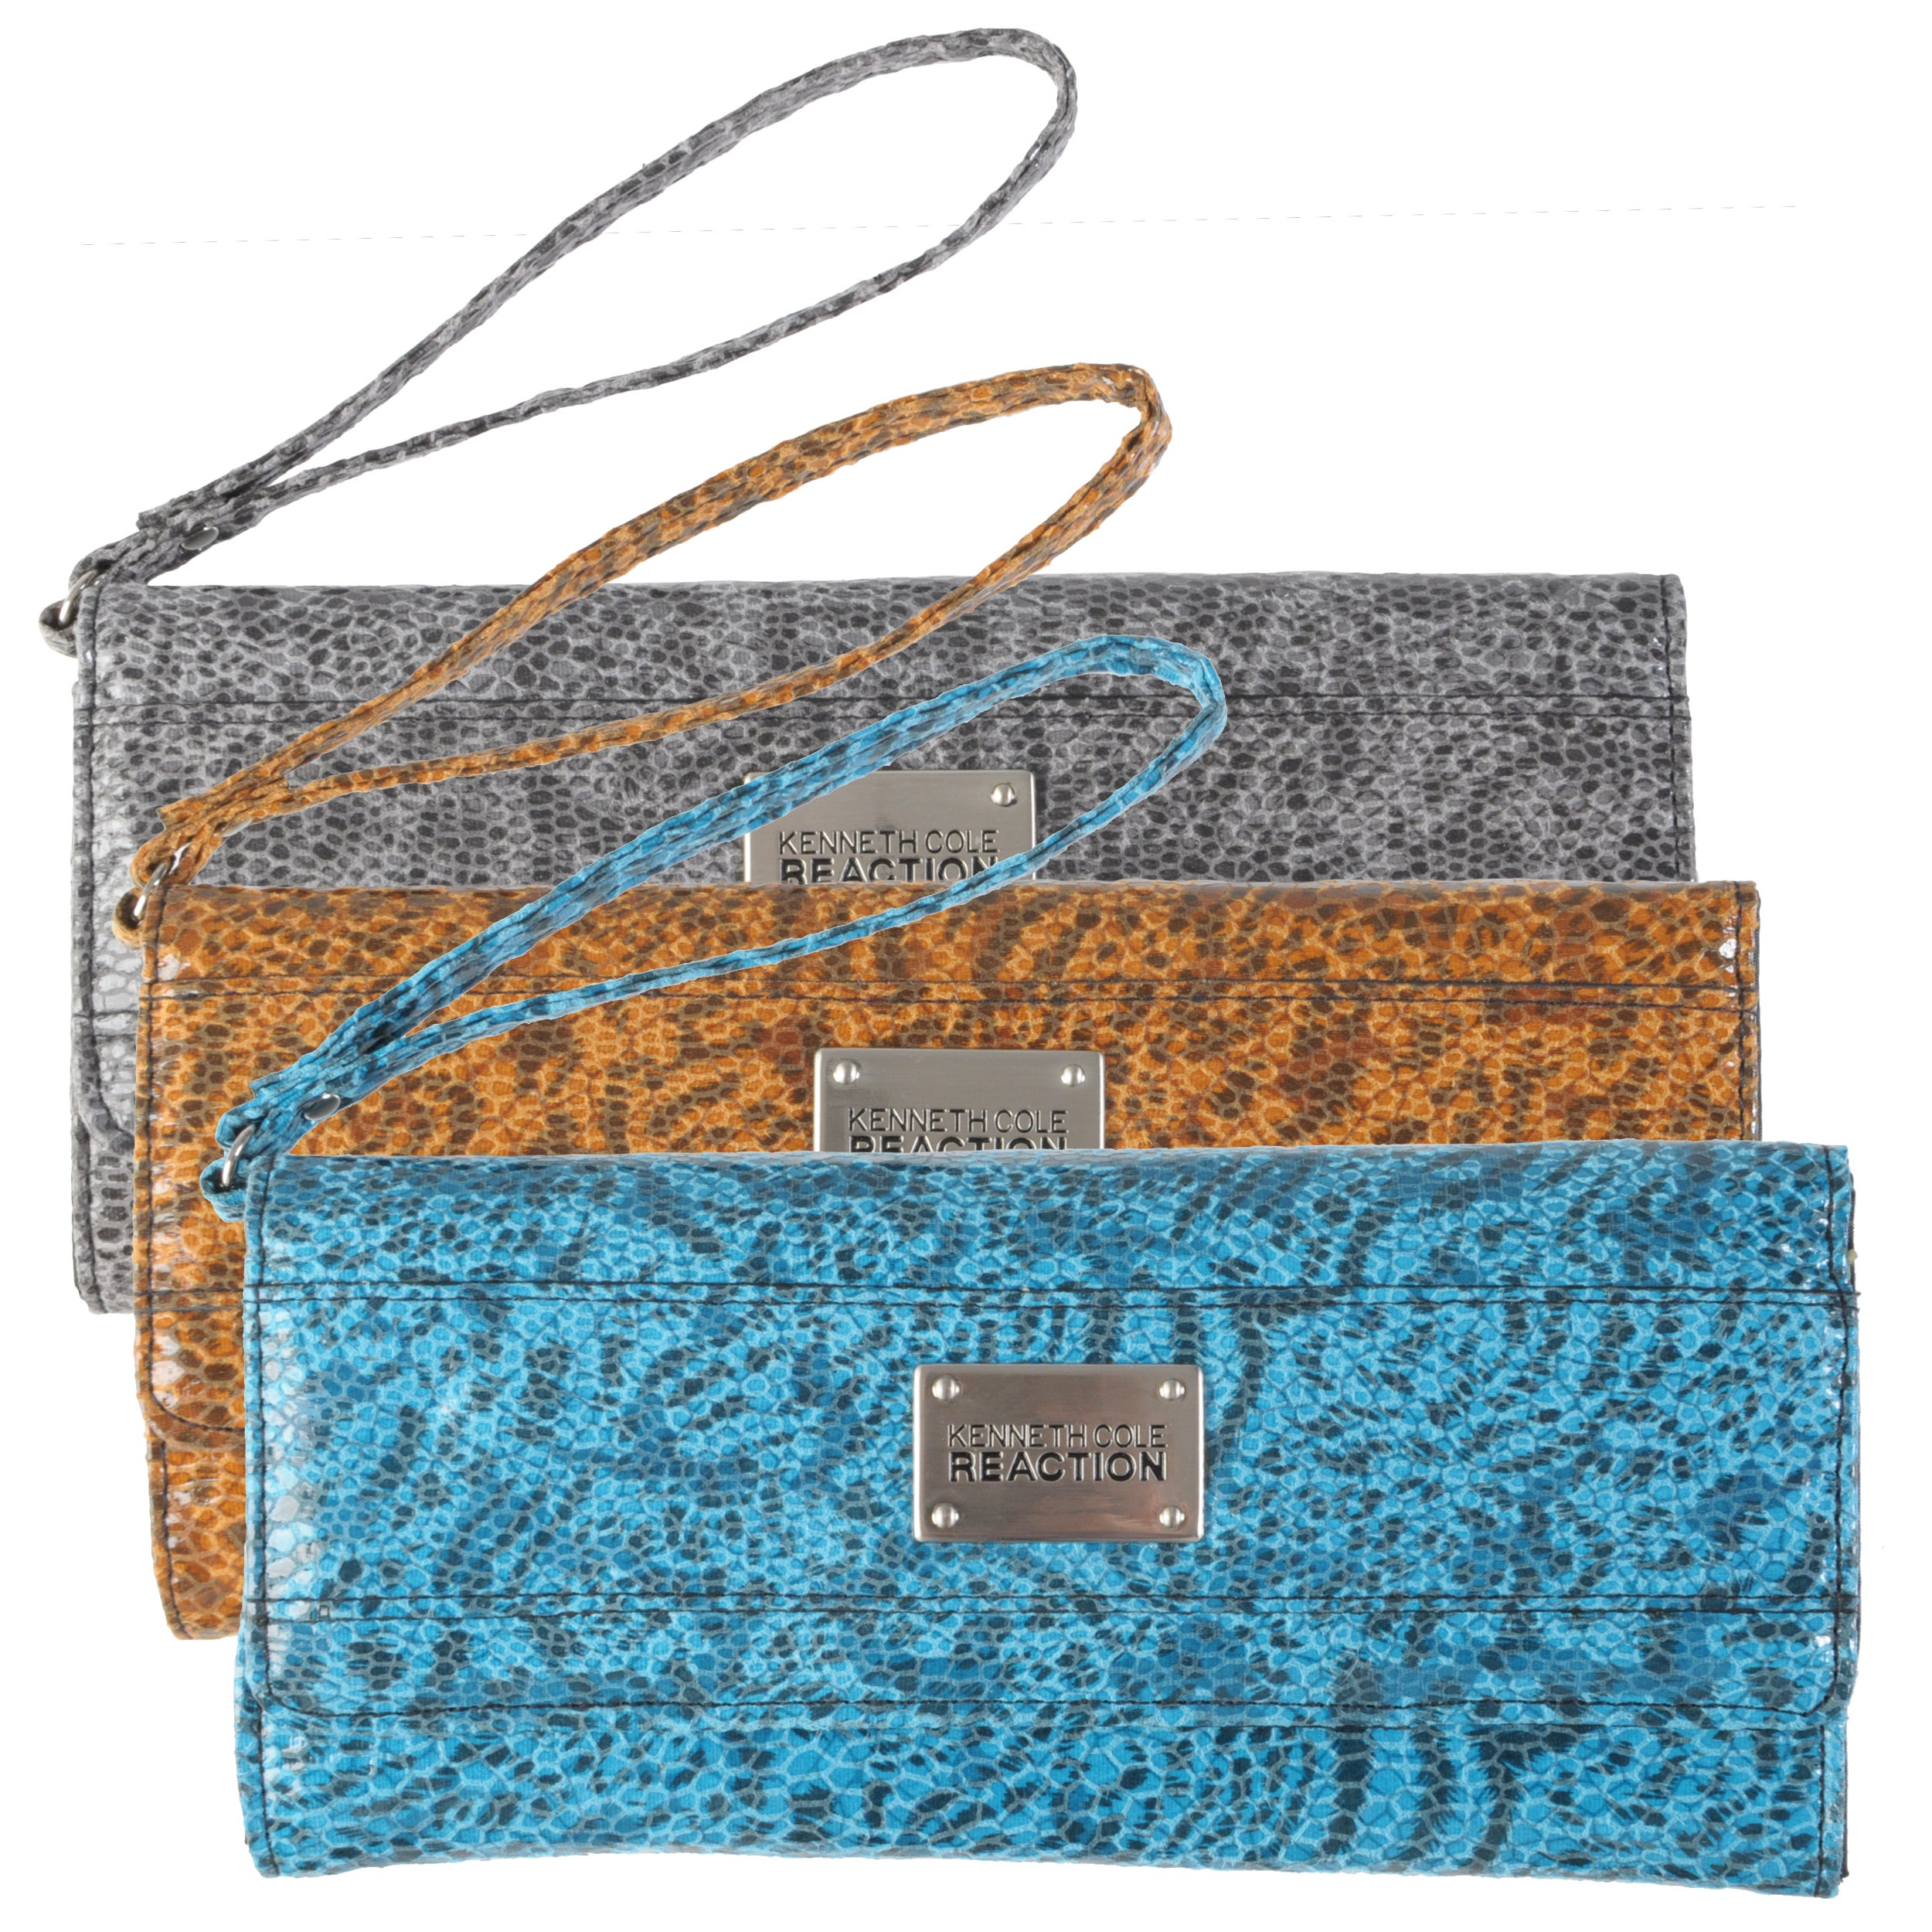 Kenneth Cole Reaction Women's Snake Print Clutch Wallet